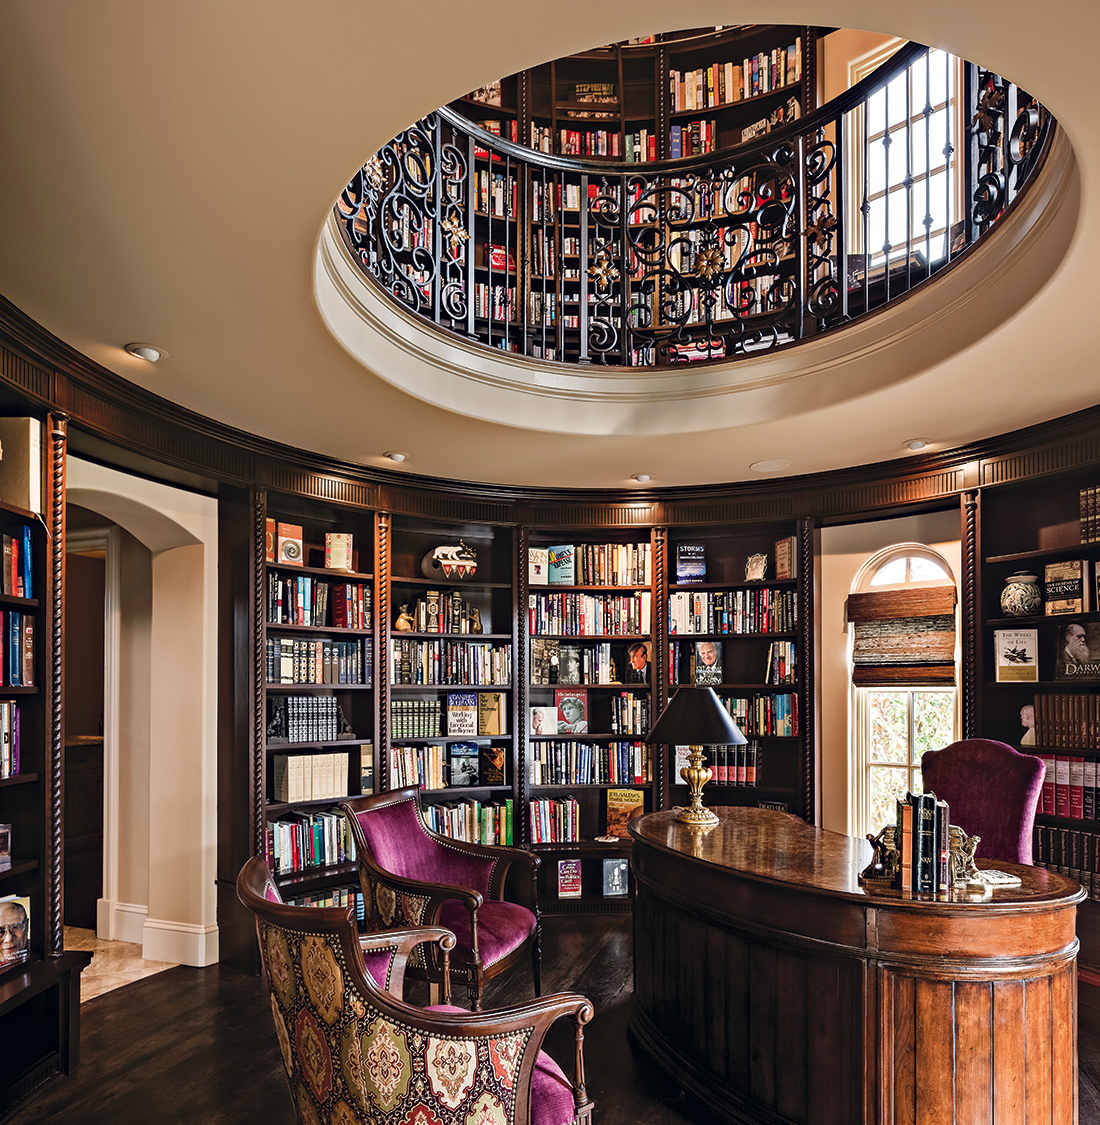 tuscan inspired home library comes full circle a design connection inc featured project. Black Bedroom Furniture Sets. Home Design Ideas